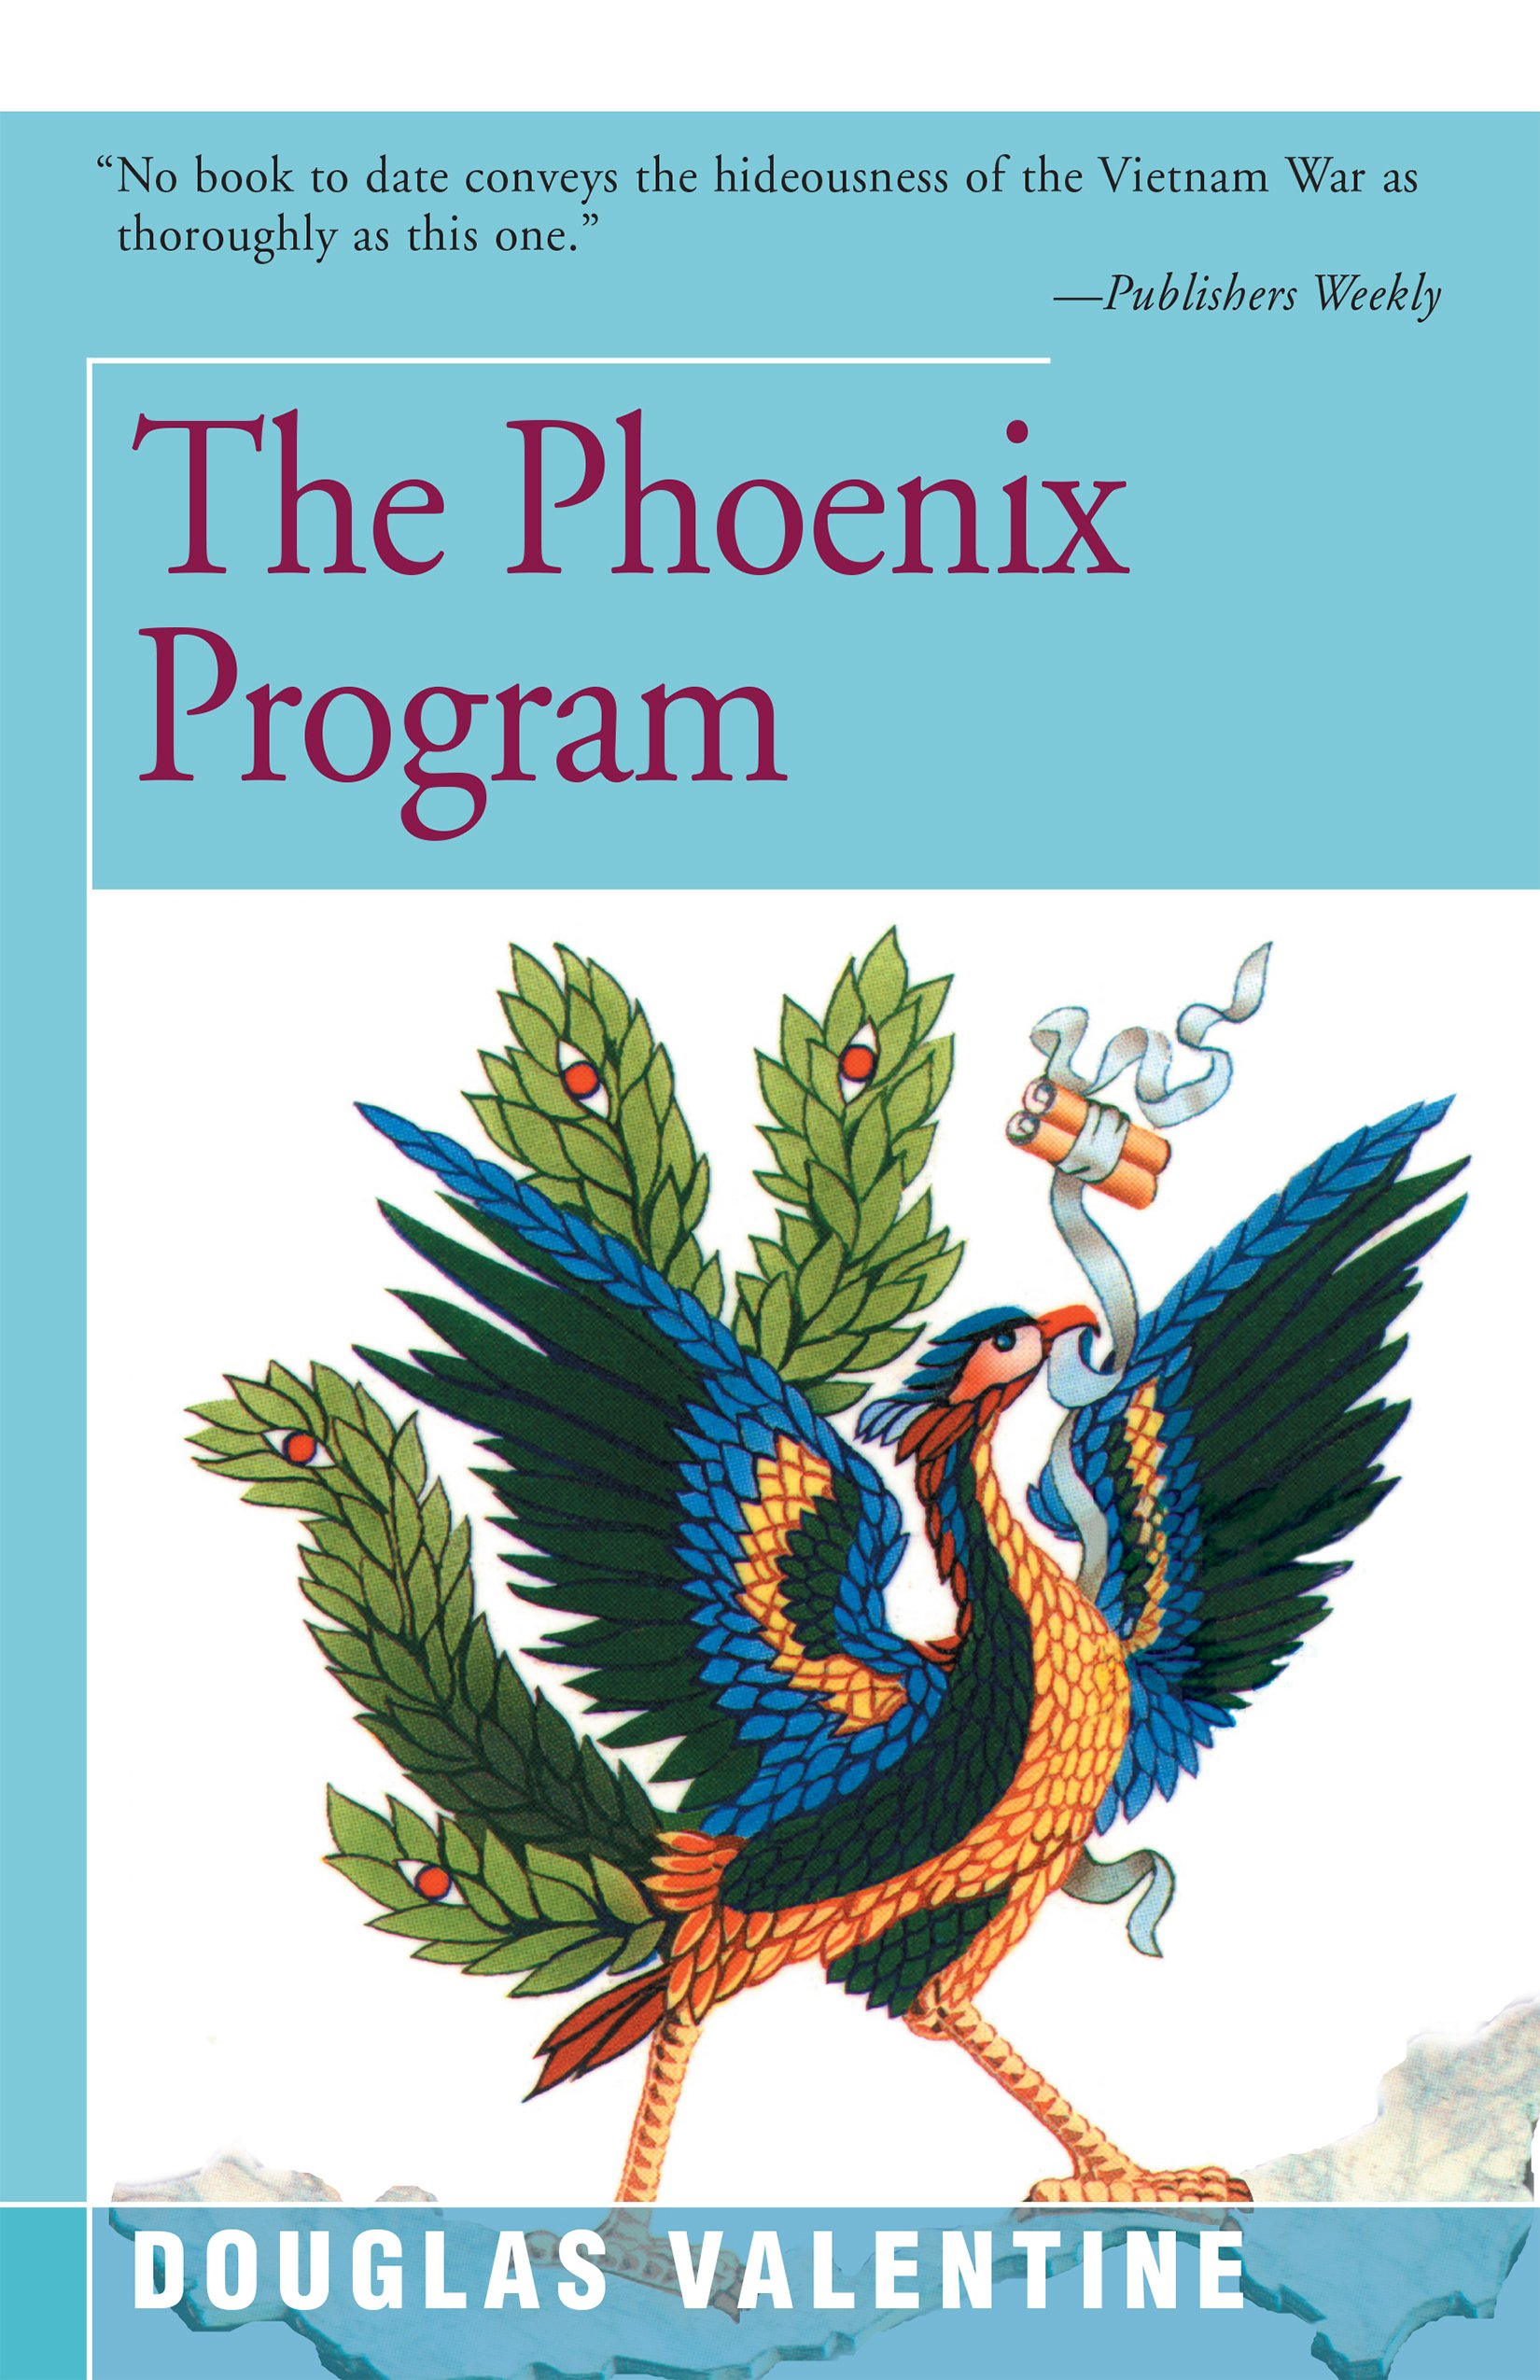 The Phoenix Program: Douglas Valentine: 9781504032889: Amazon.com: Books